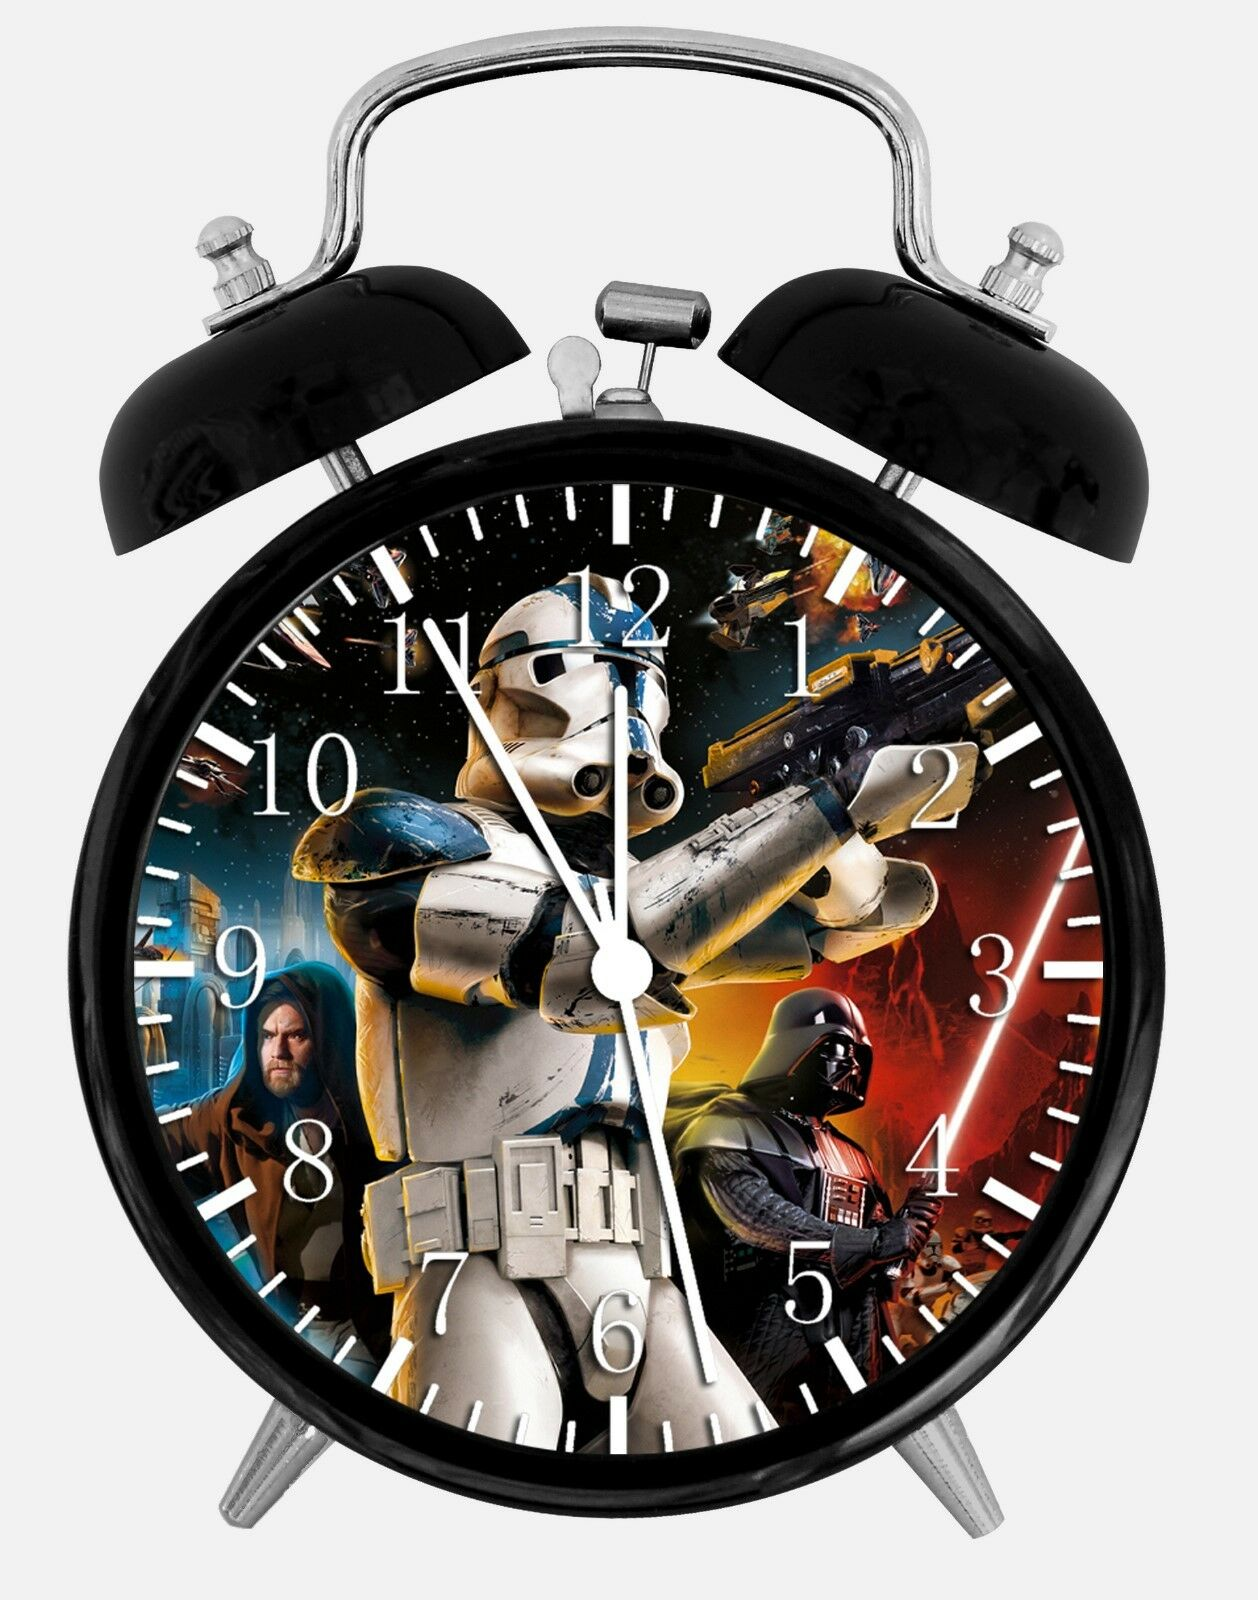 """Star Wars Alarm Desk Clock 3.75"""" Home or Office Decor W75 Nice For Gift"""